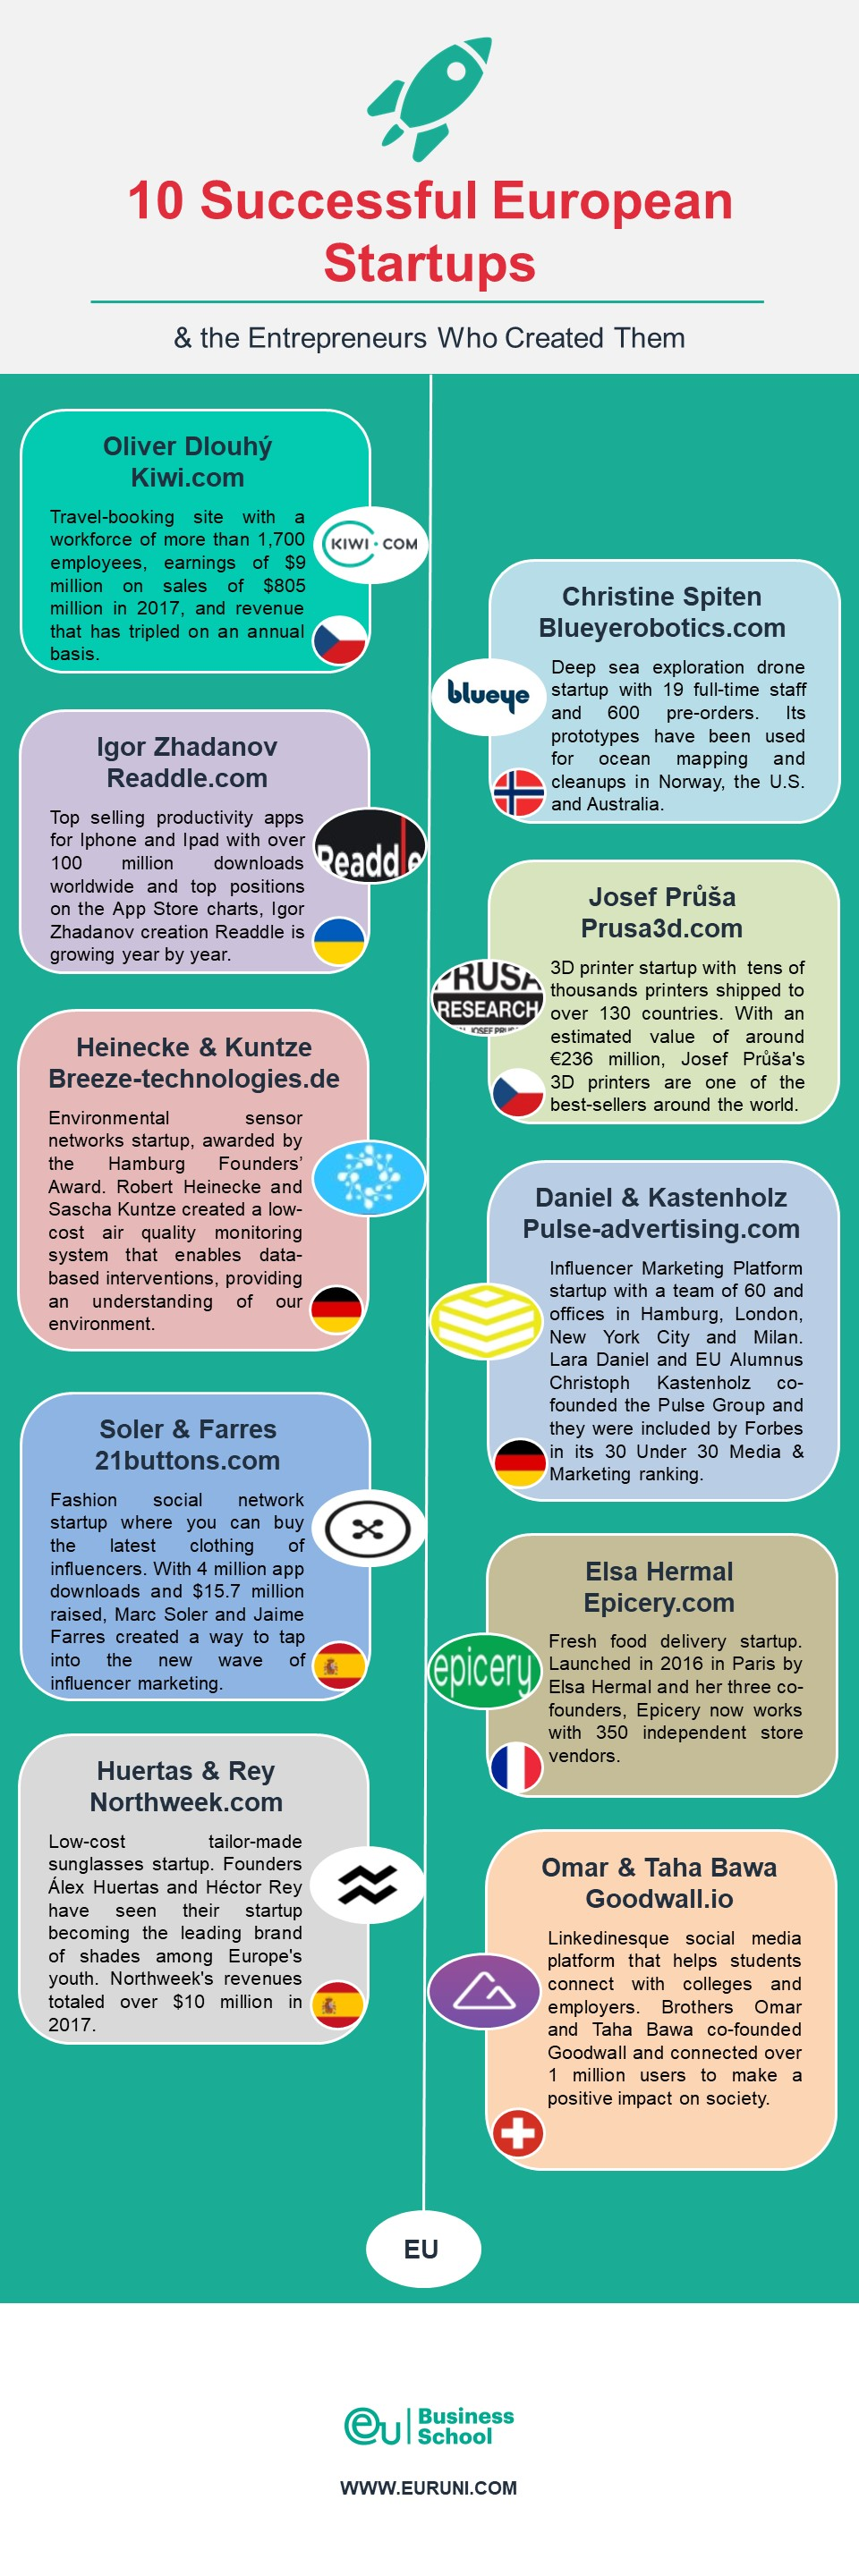 10 Successful European Startups Infographic